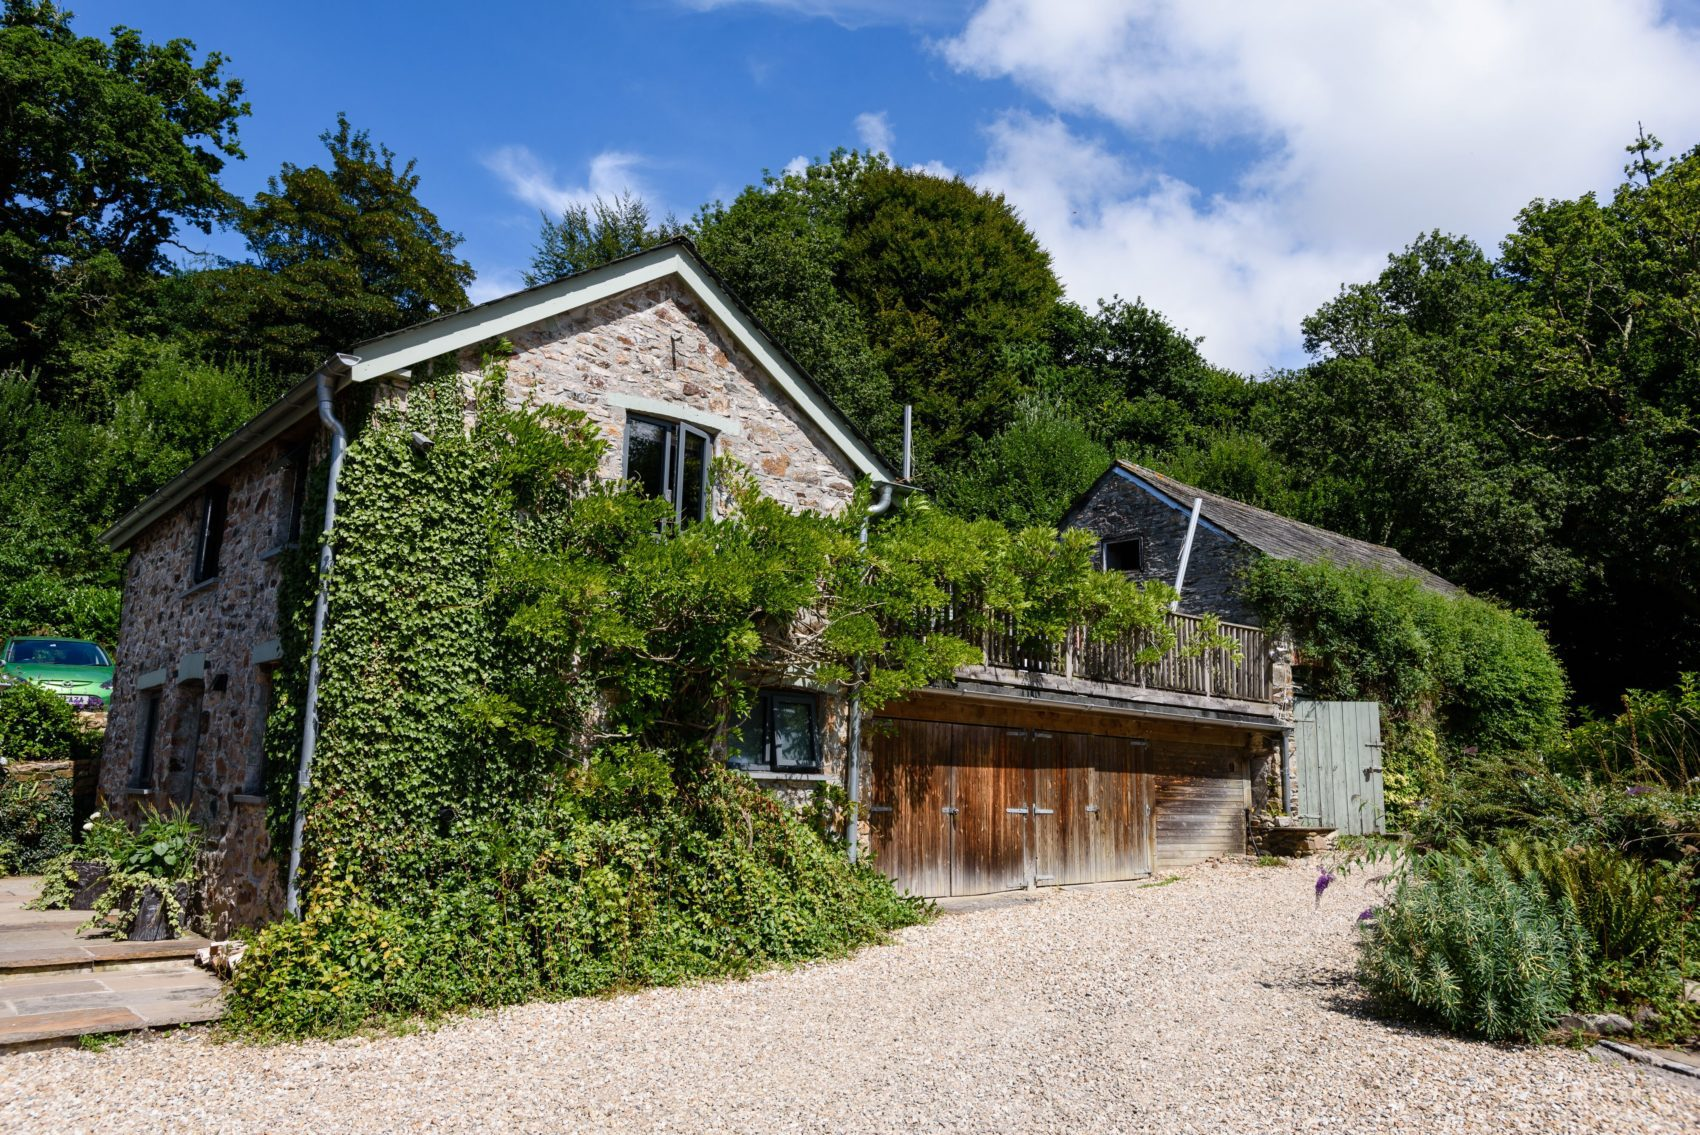 Accommodation, ever after, honeymoon suite, cottage, greenery, spring, summer, flowers, growth, sunshine, beautiful